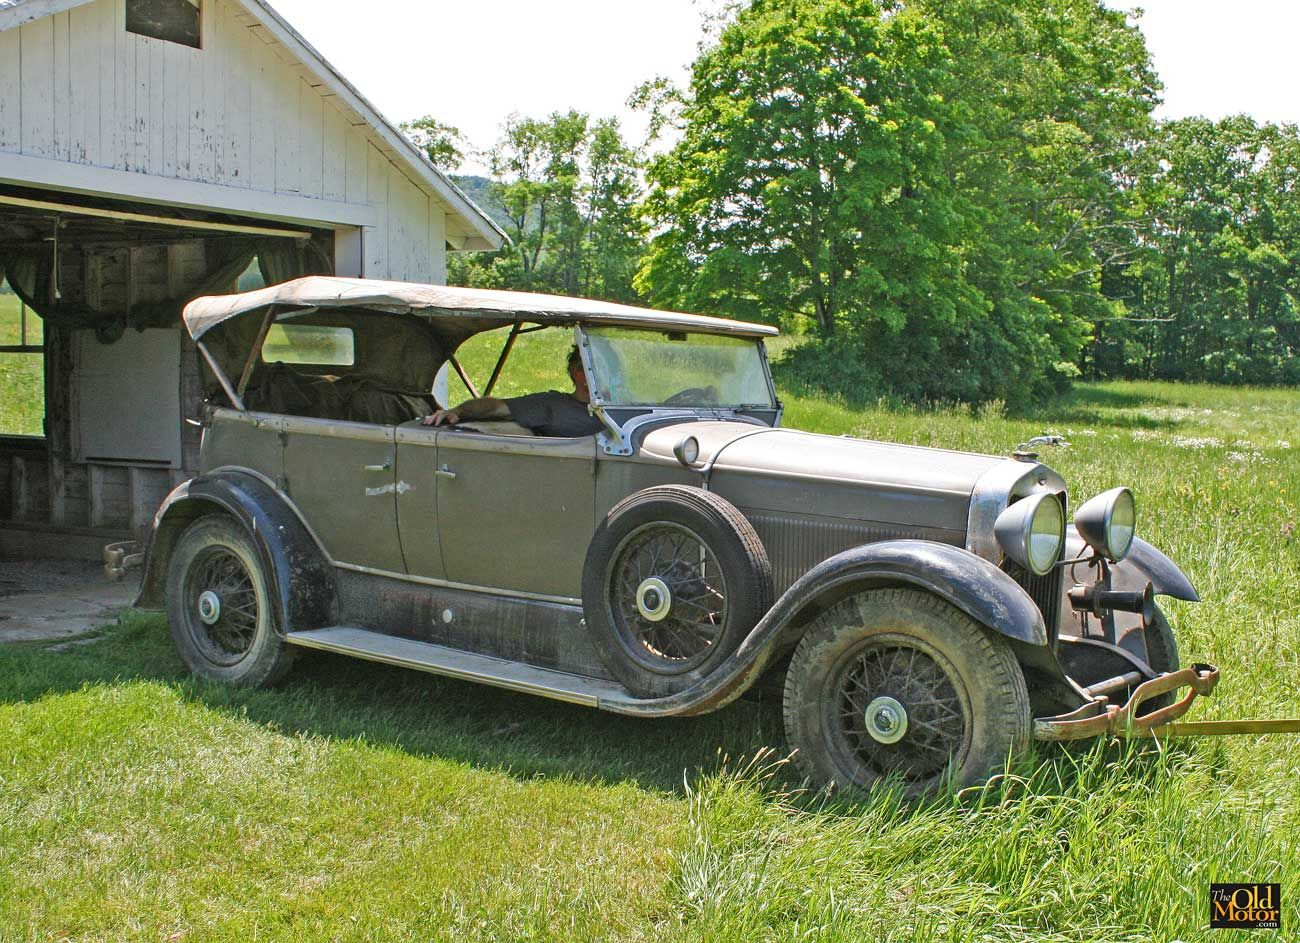 For Sale: Barn-Fresh 1930 Lincoln Sport Phaeton just removed after ...